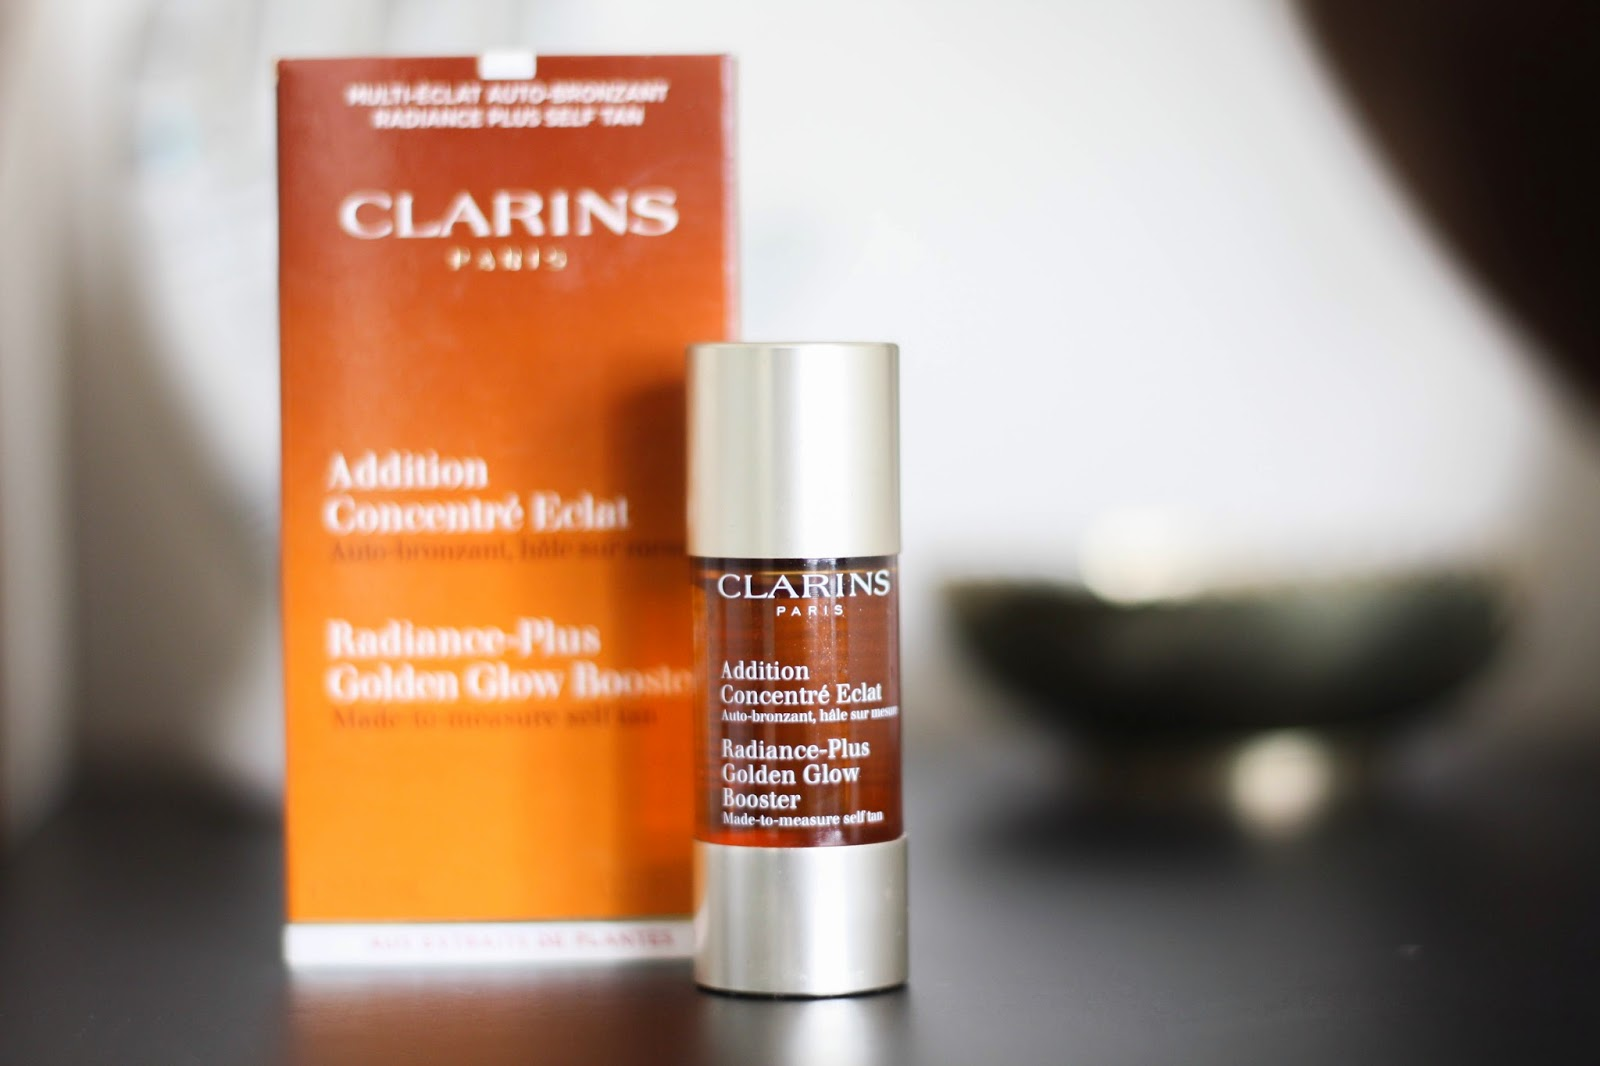 Clarins Radiance Plus Golden Glow Booster review